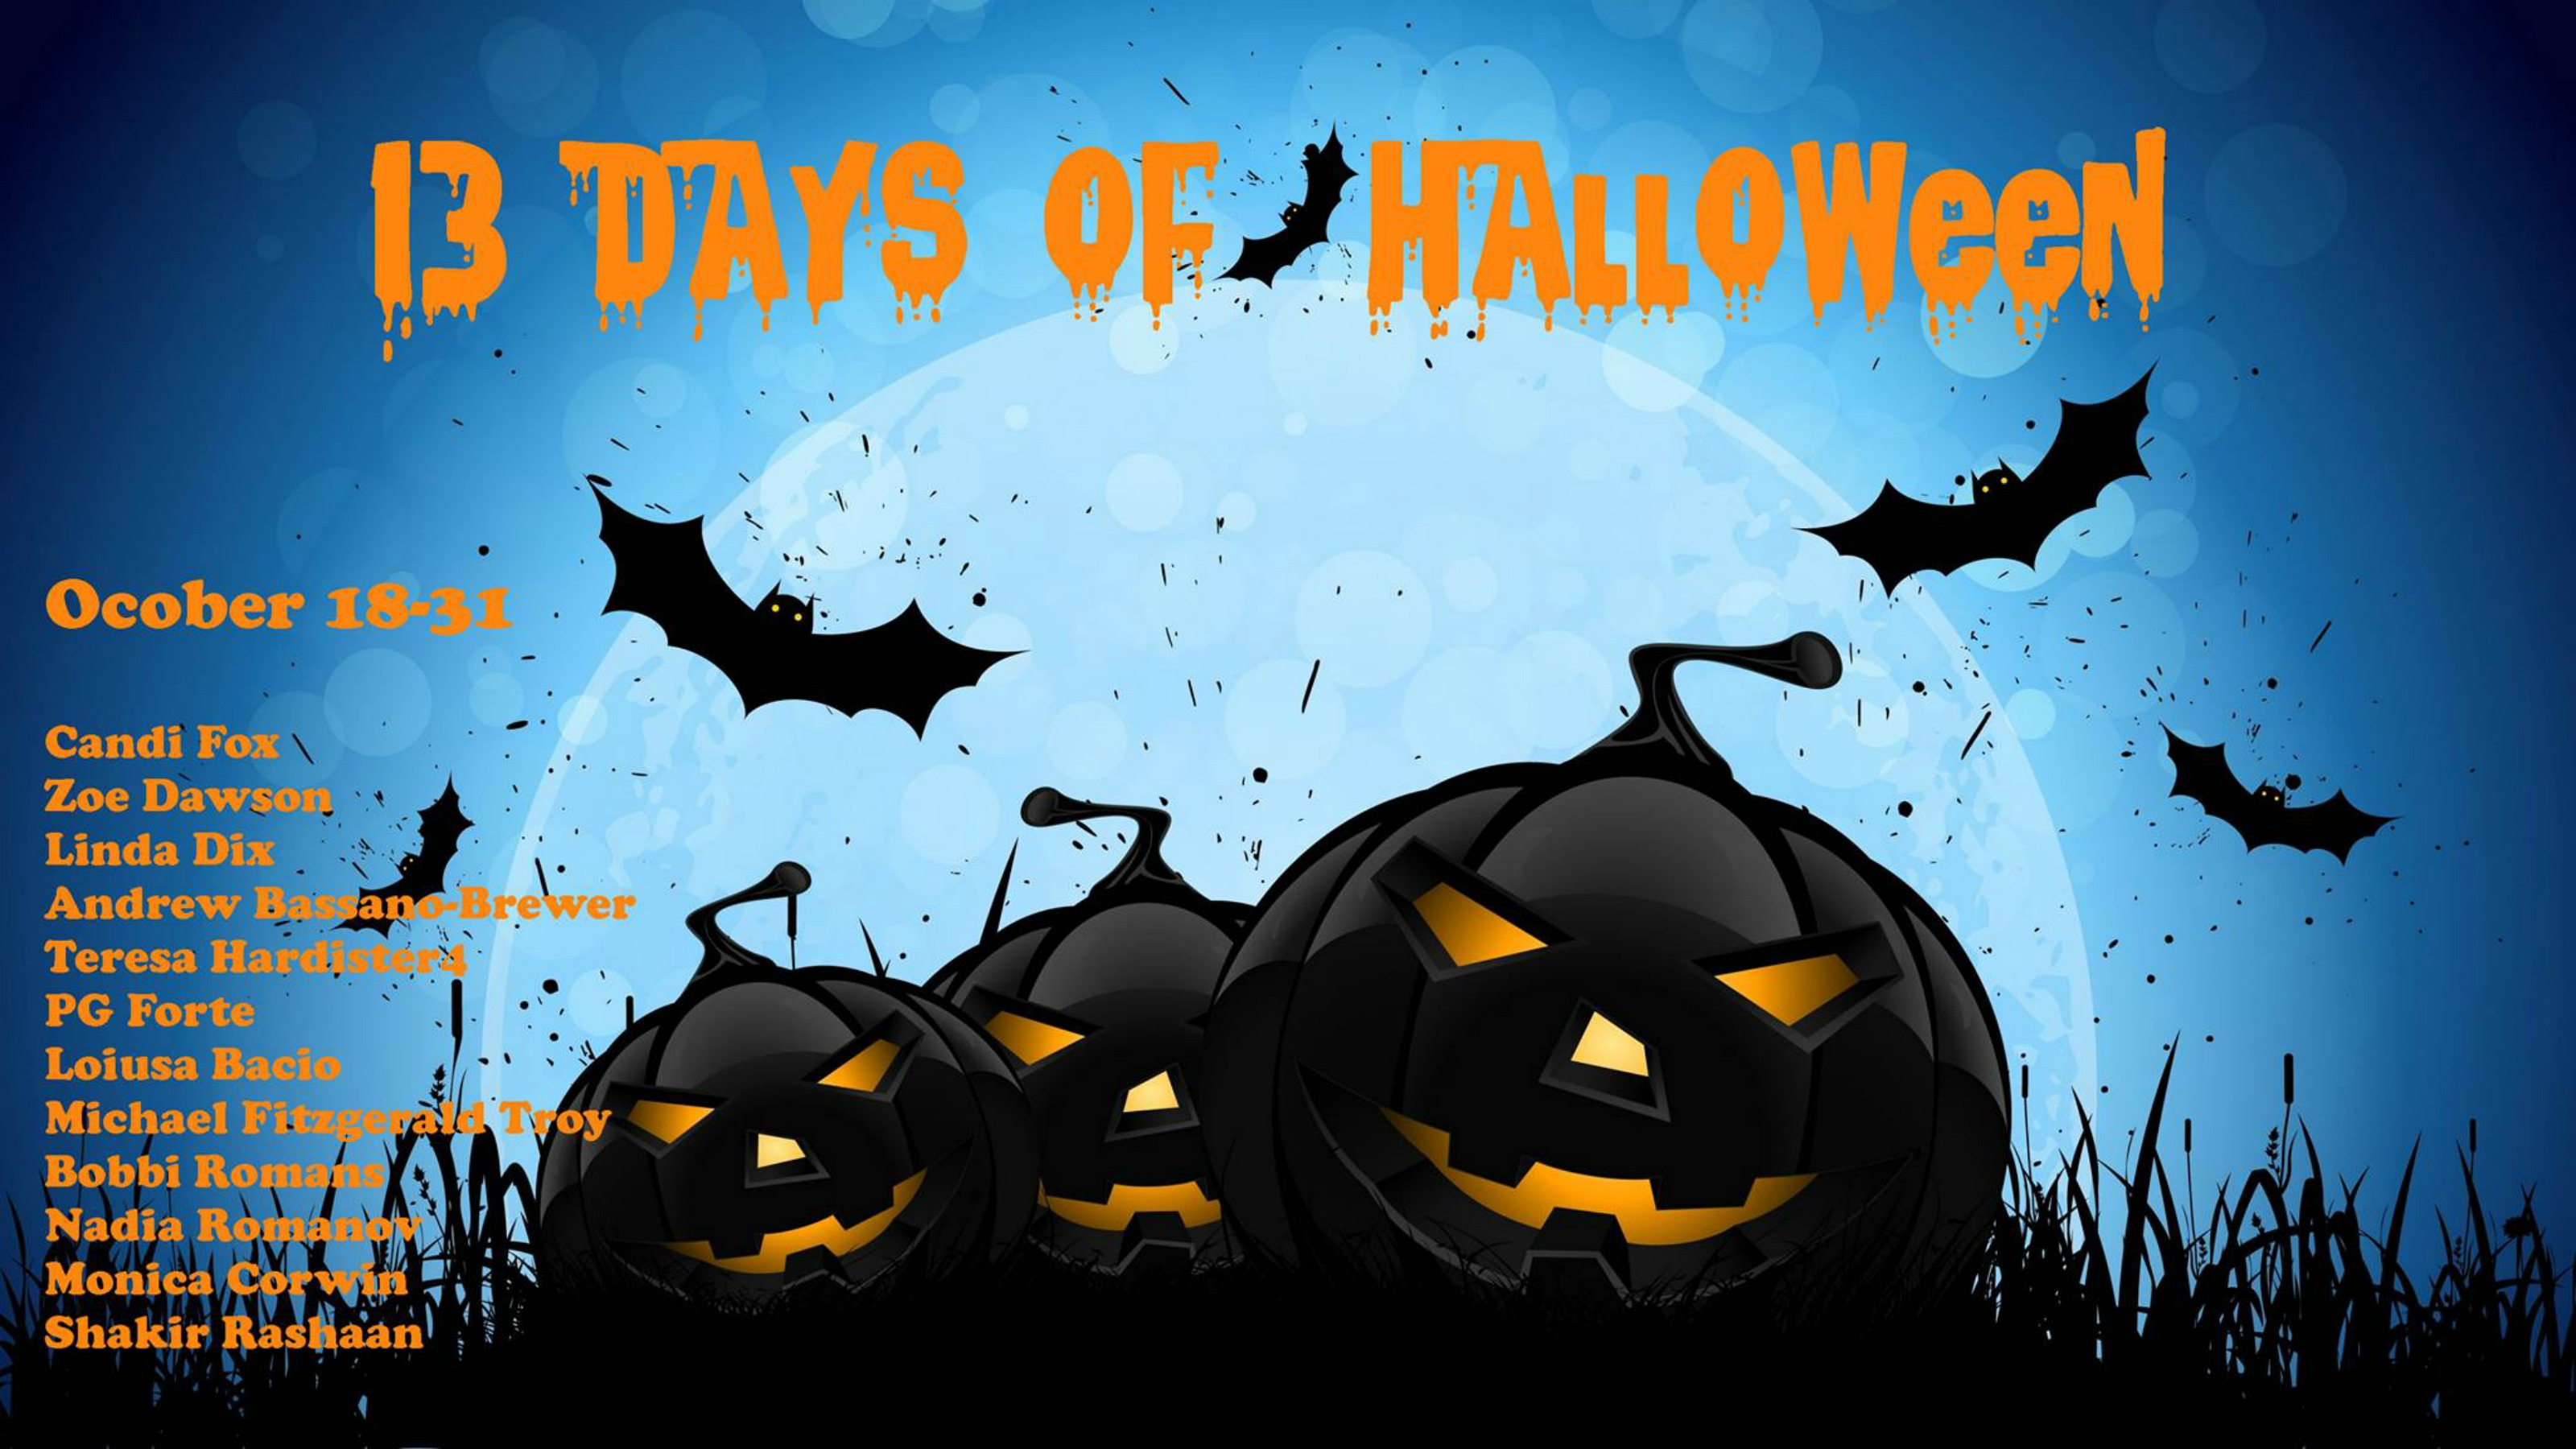 13 days of halloween! - zoe dawson